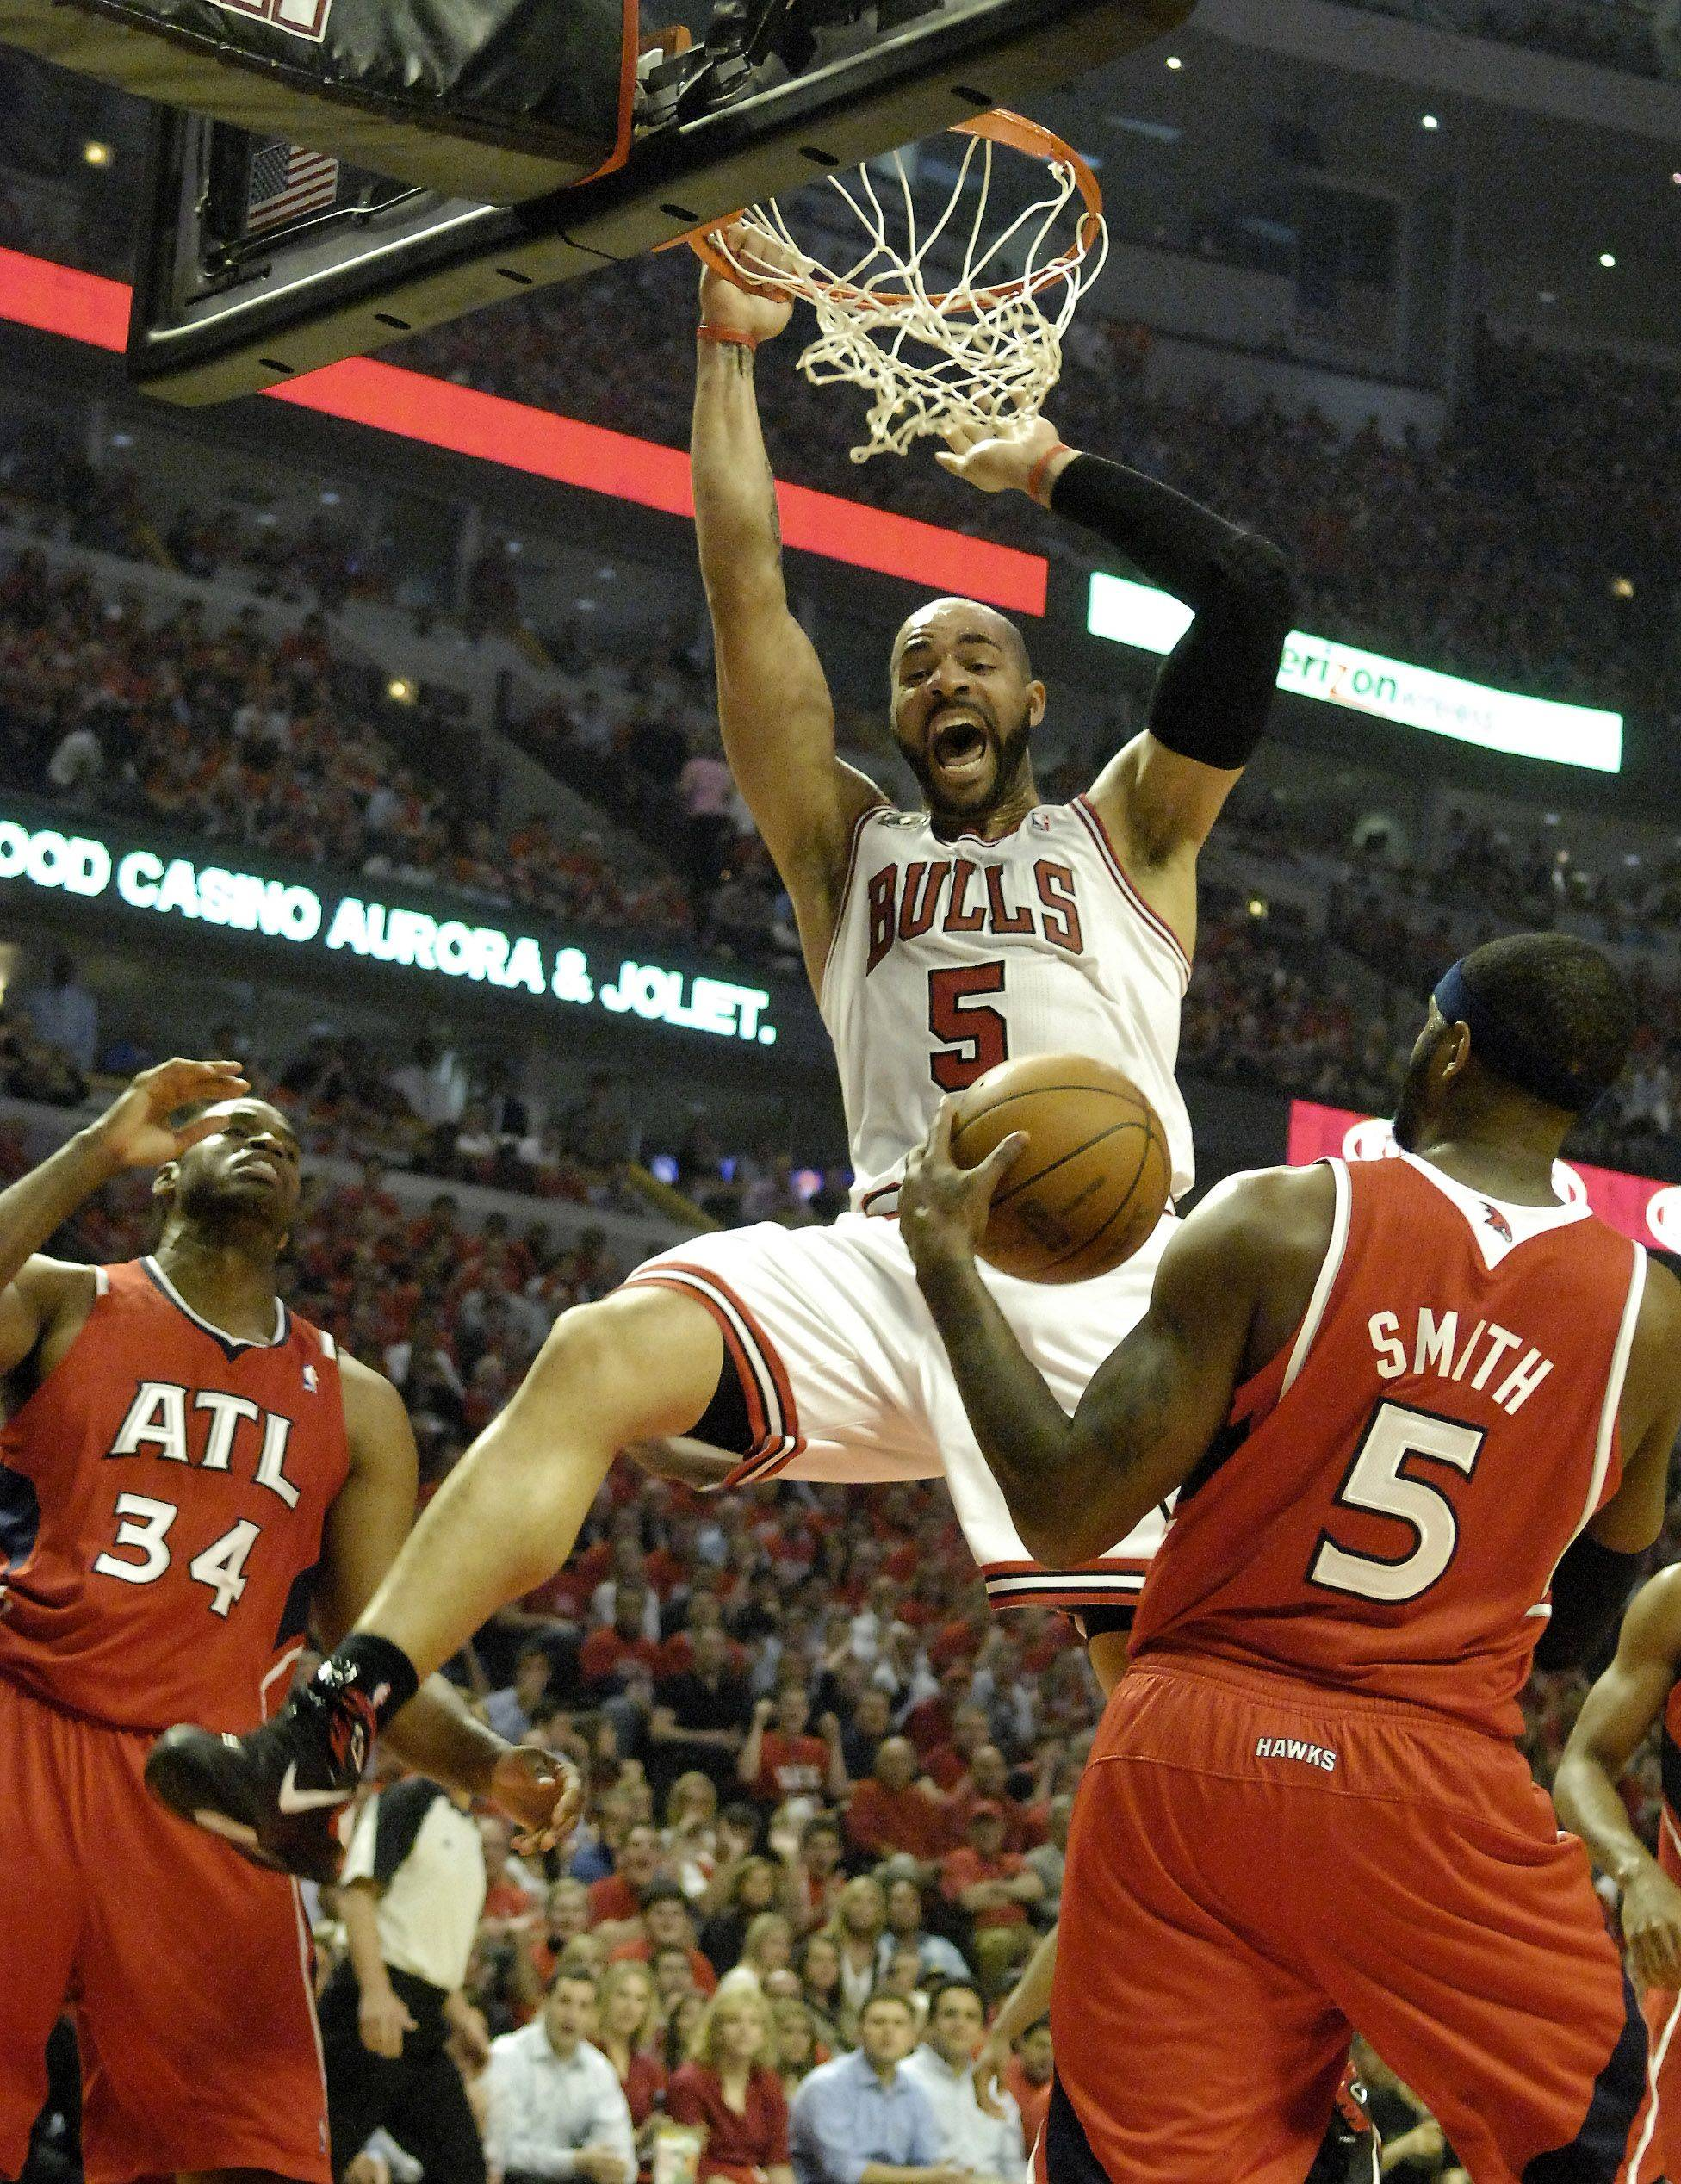 Chicago Bulls power forward Carlos Boozer throws down a dunk in front of Atlanta Hawks power forward Josh Smith during game 5 Tuesday.